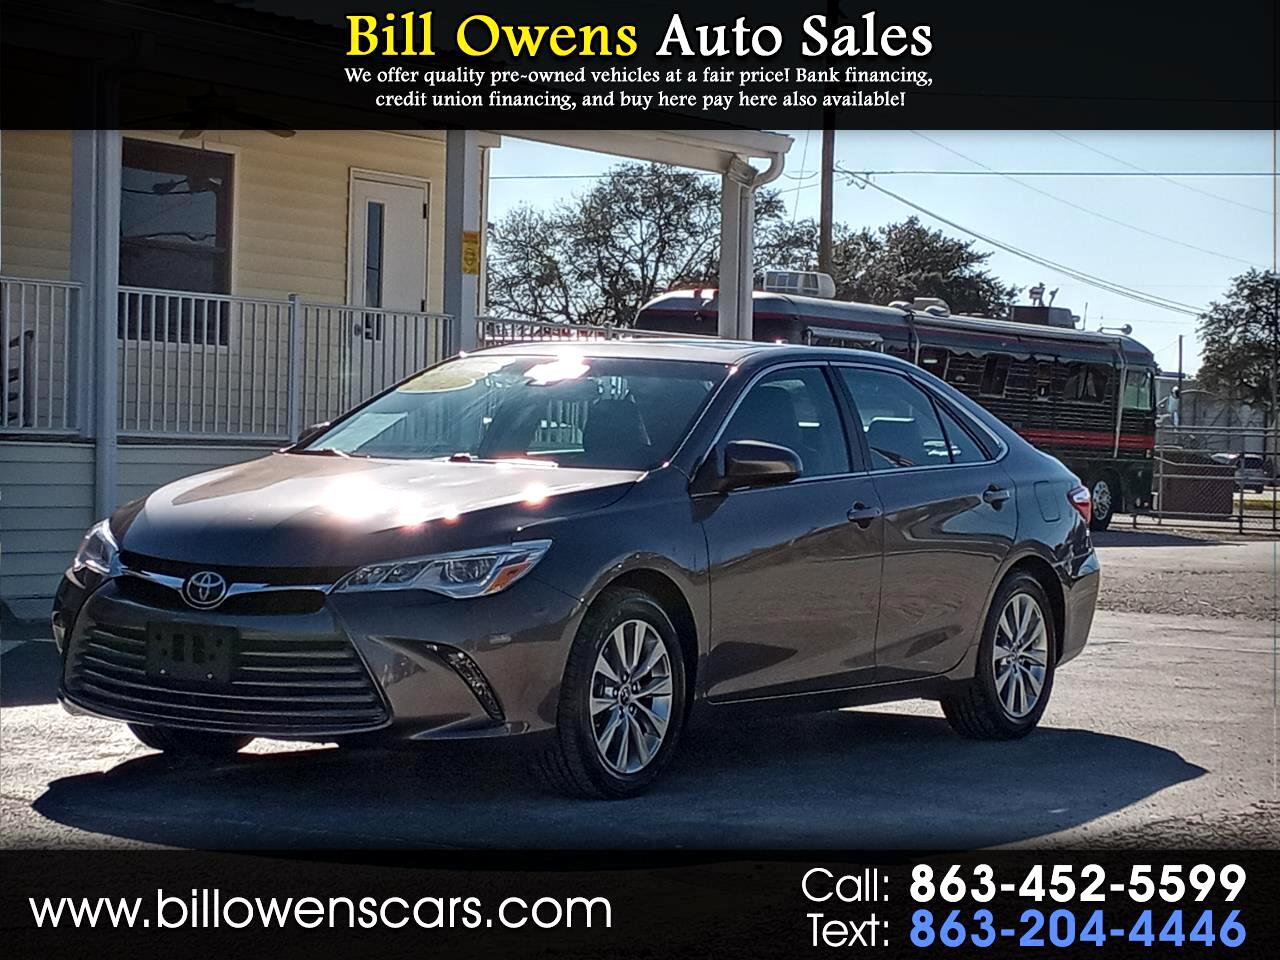 Toyota Camry 2014.5 4dr Sdn V6 Auto XLE (Natl) 2015